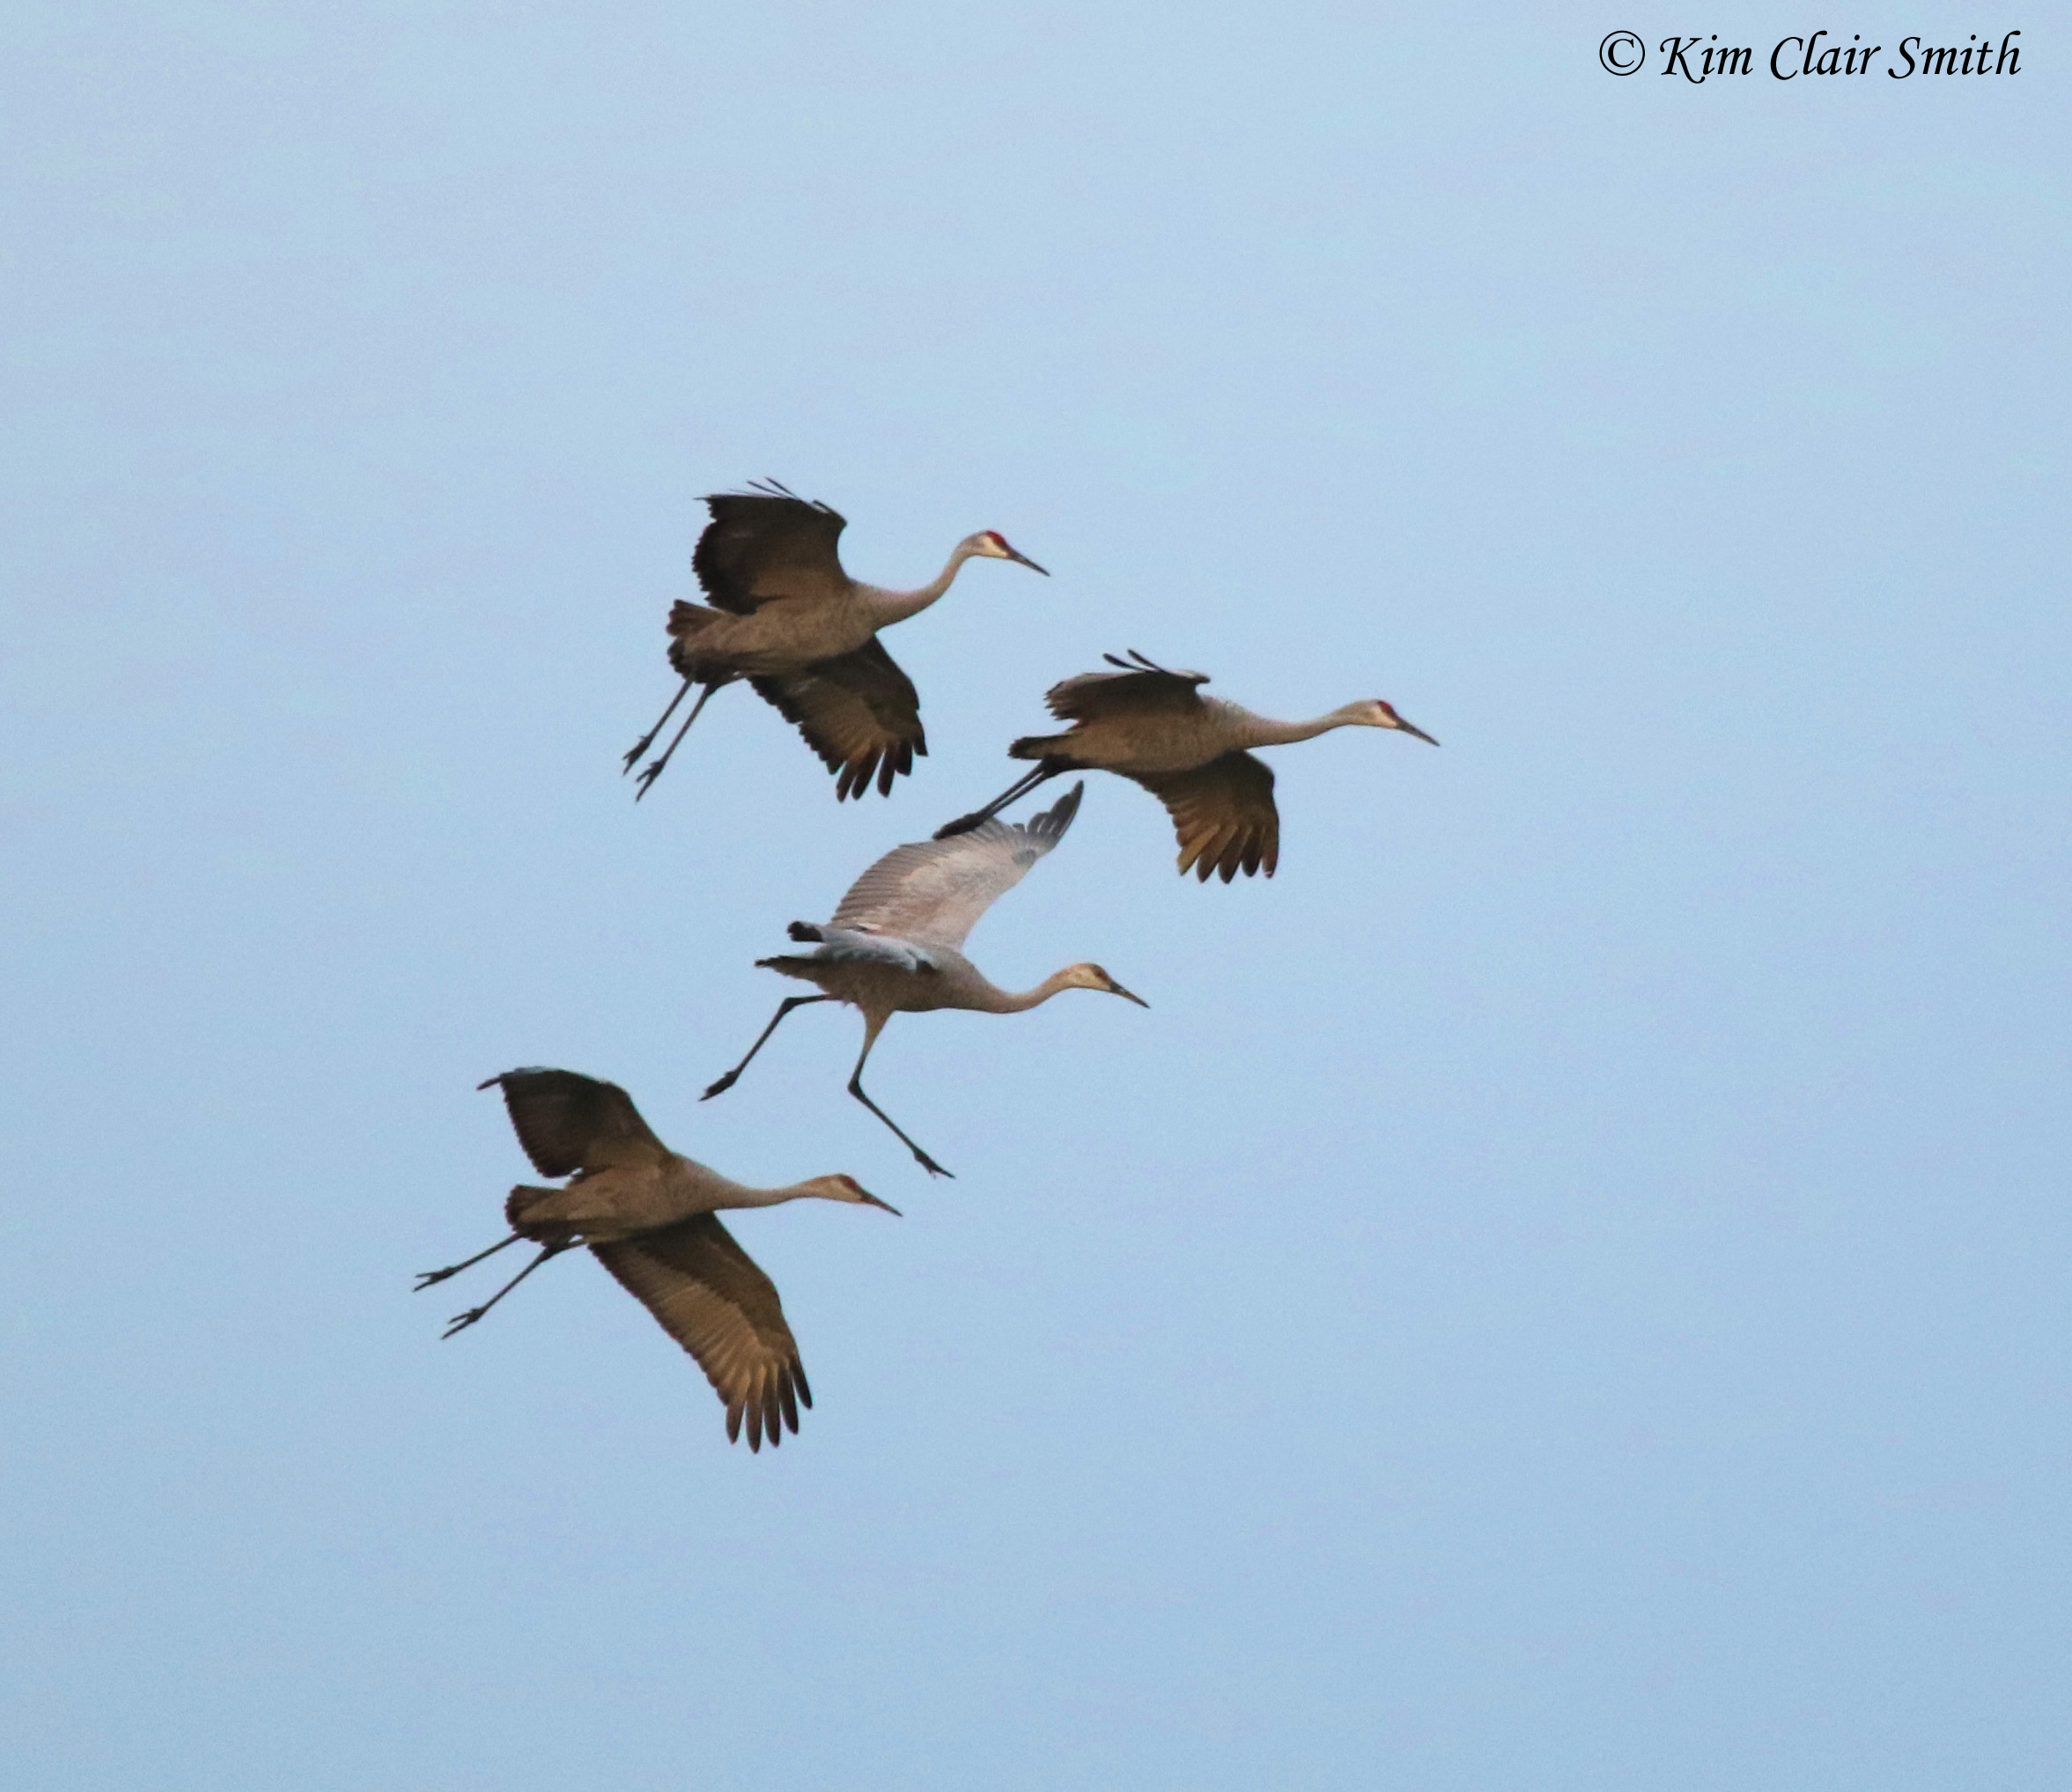 Sandhill cranes with legs down for landing w sig